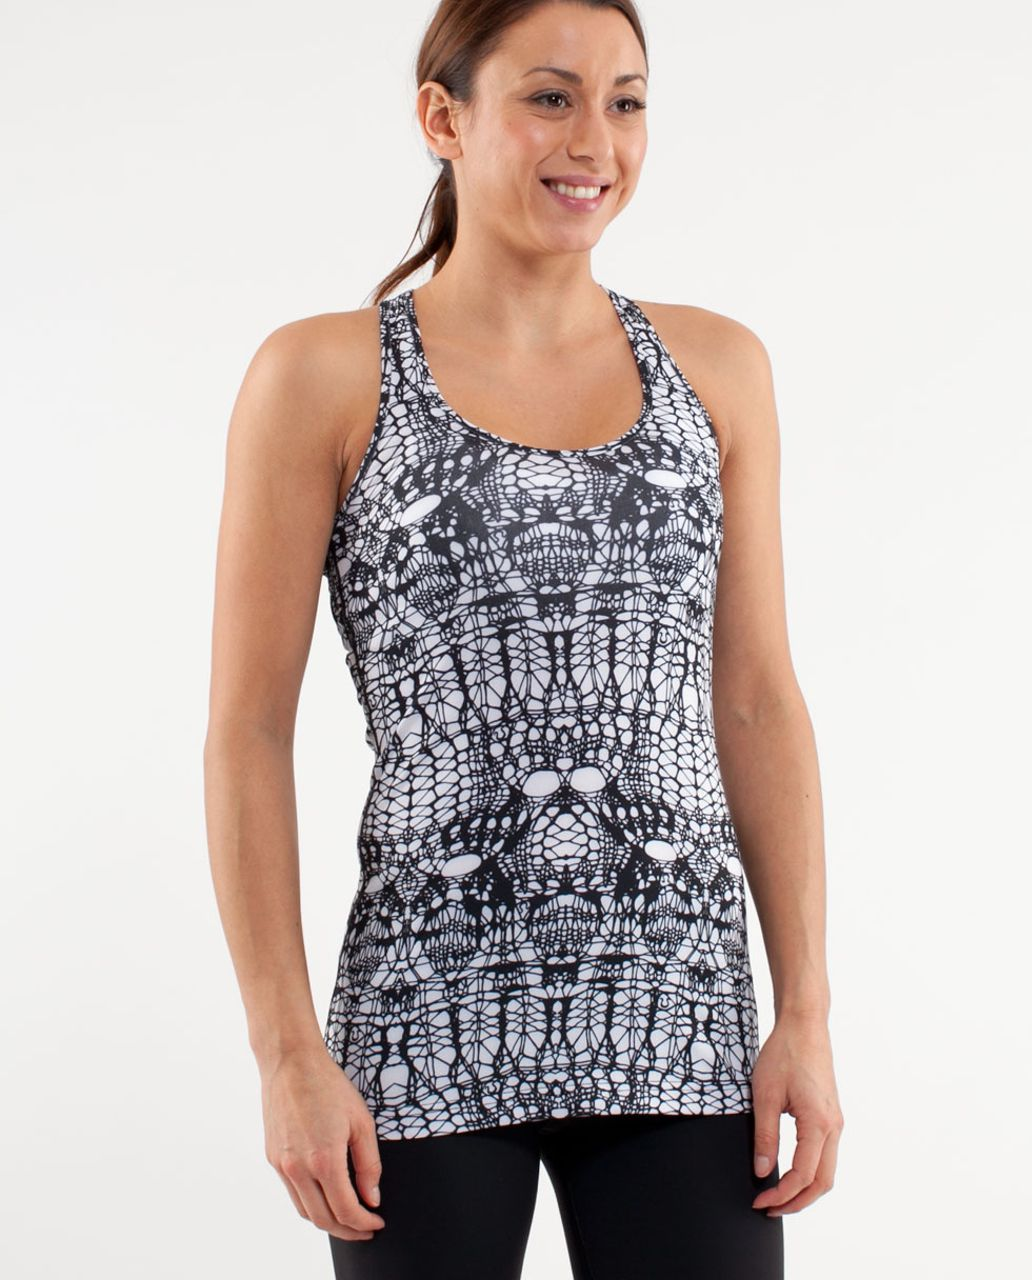 Lululemon Cool Racerback - White Black Glacier Lace